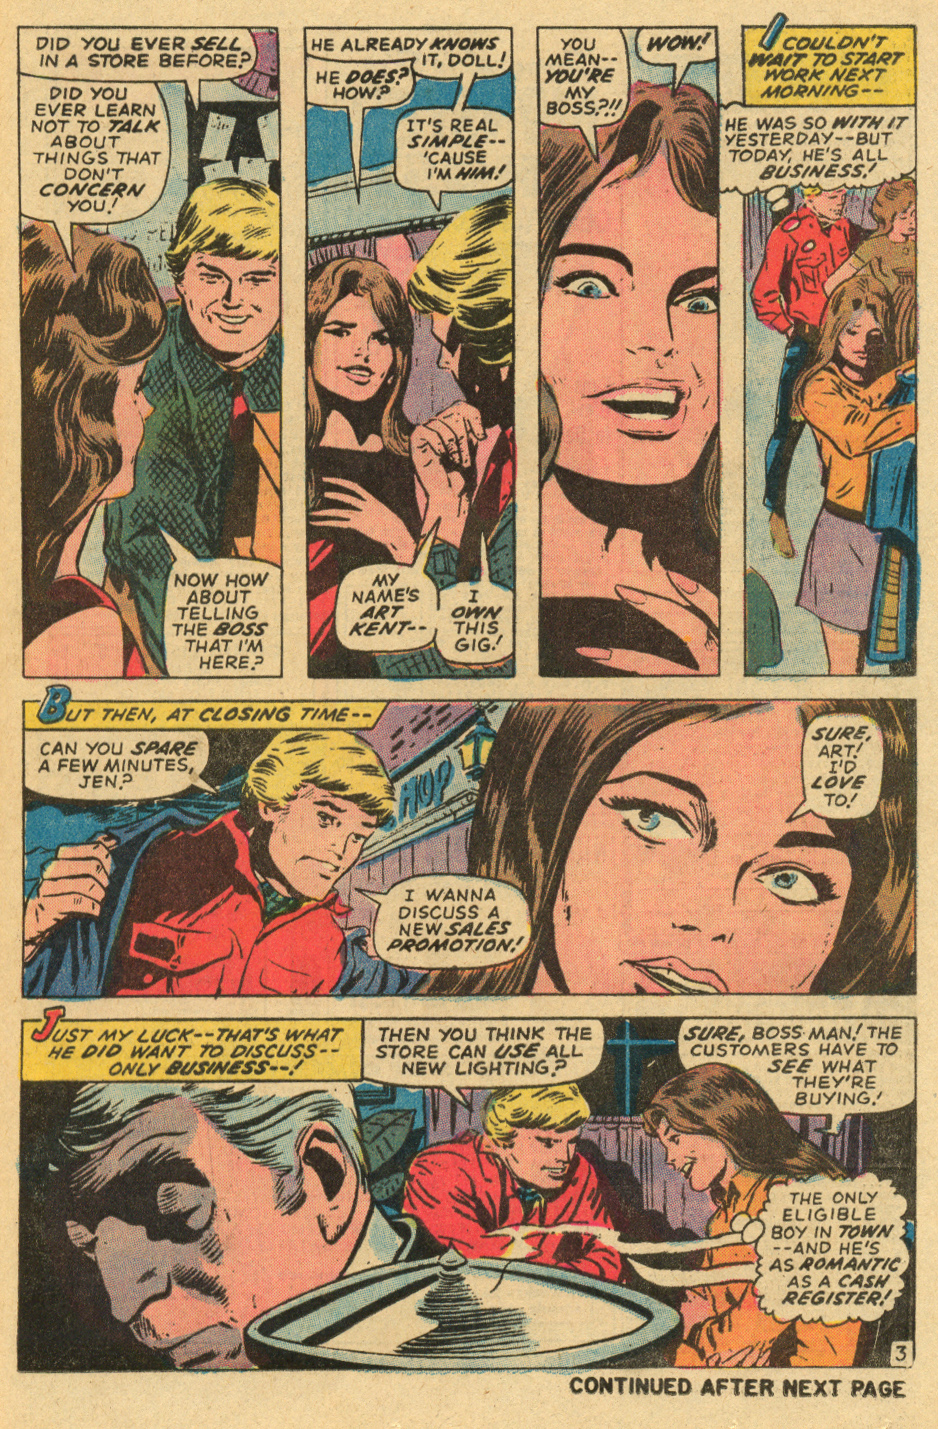 Gene colan romance comic book art Marvel comics